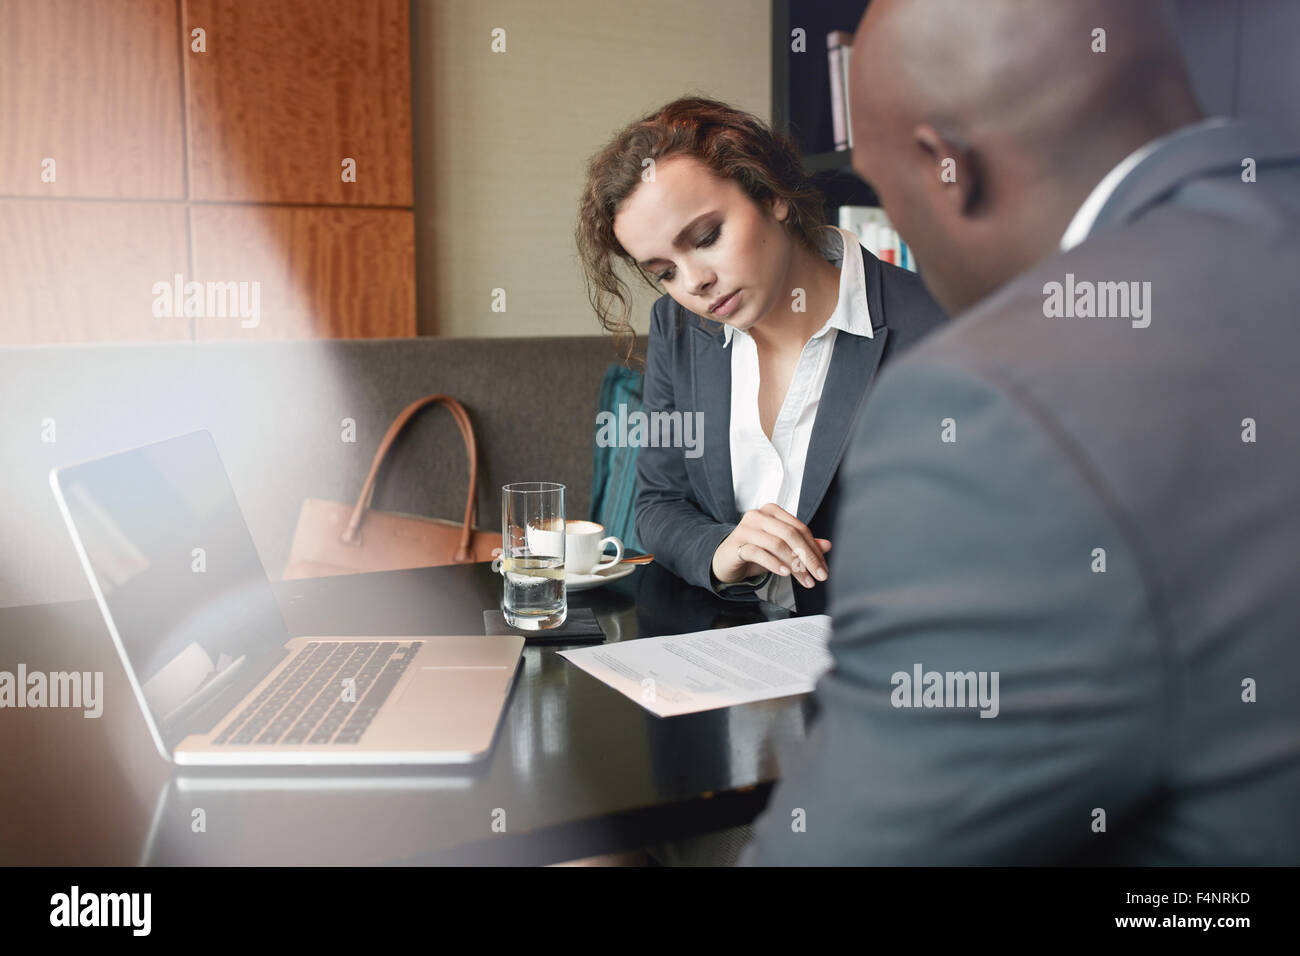 Serious business people working together in a cafe and reading some contract documents. Businessman and businesswoman - Stock Image